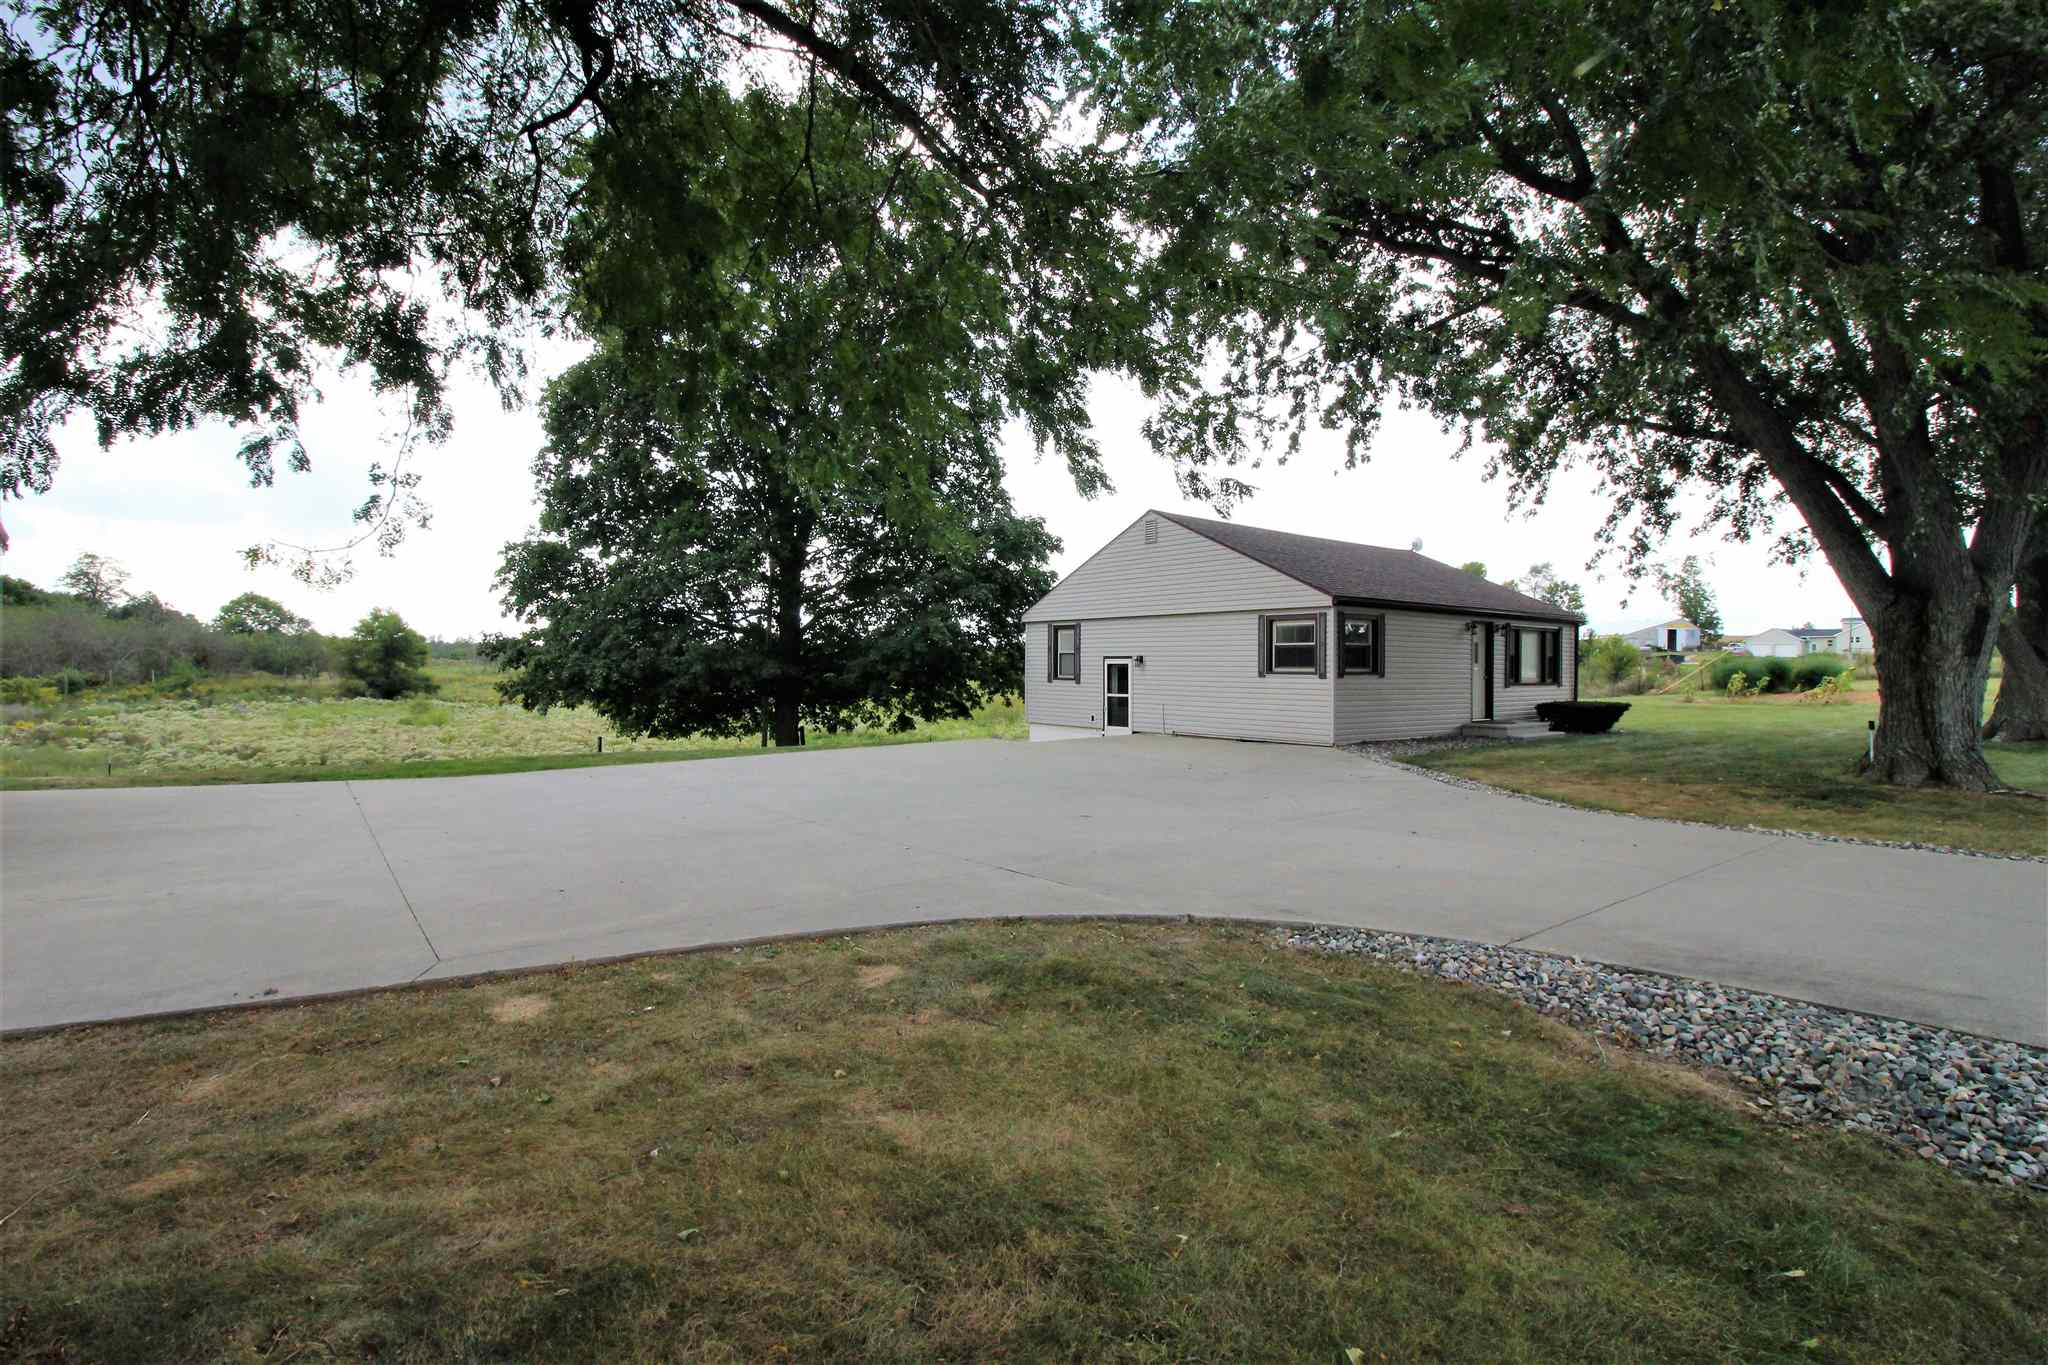 9355 N Angling Road, Kendallville, IN 46755